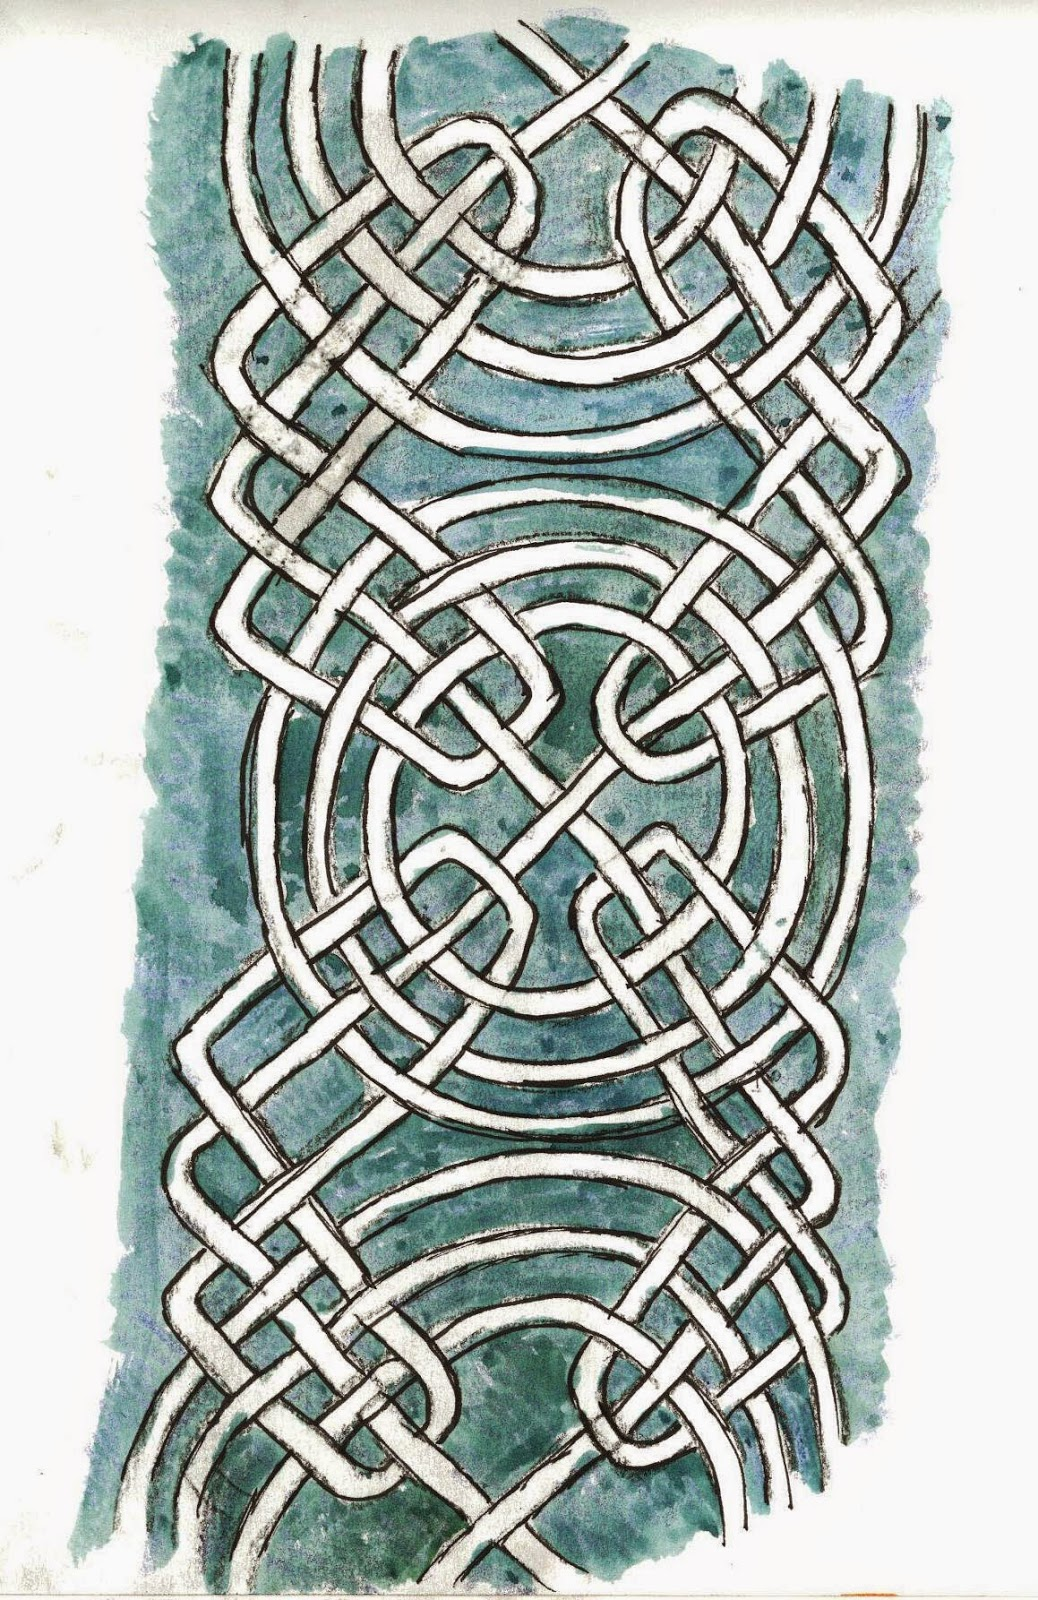 My pen and watercolour sketch of knotwork with concentric circles